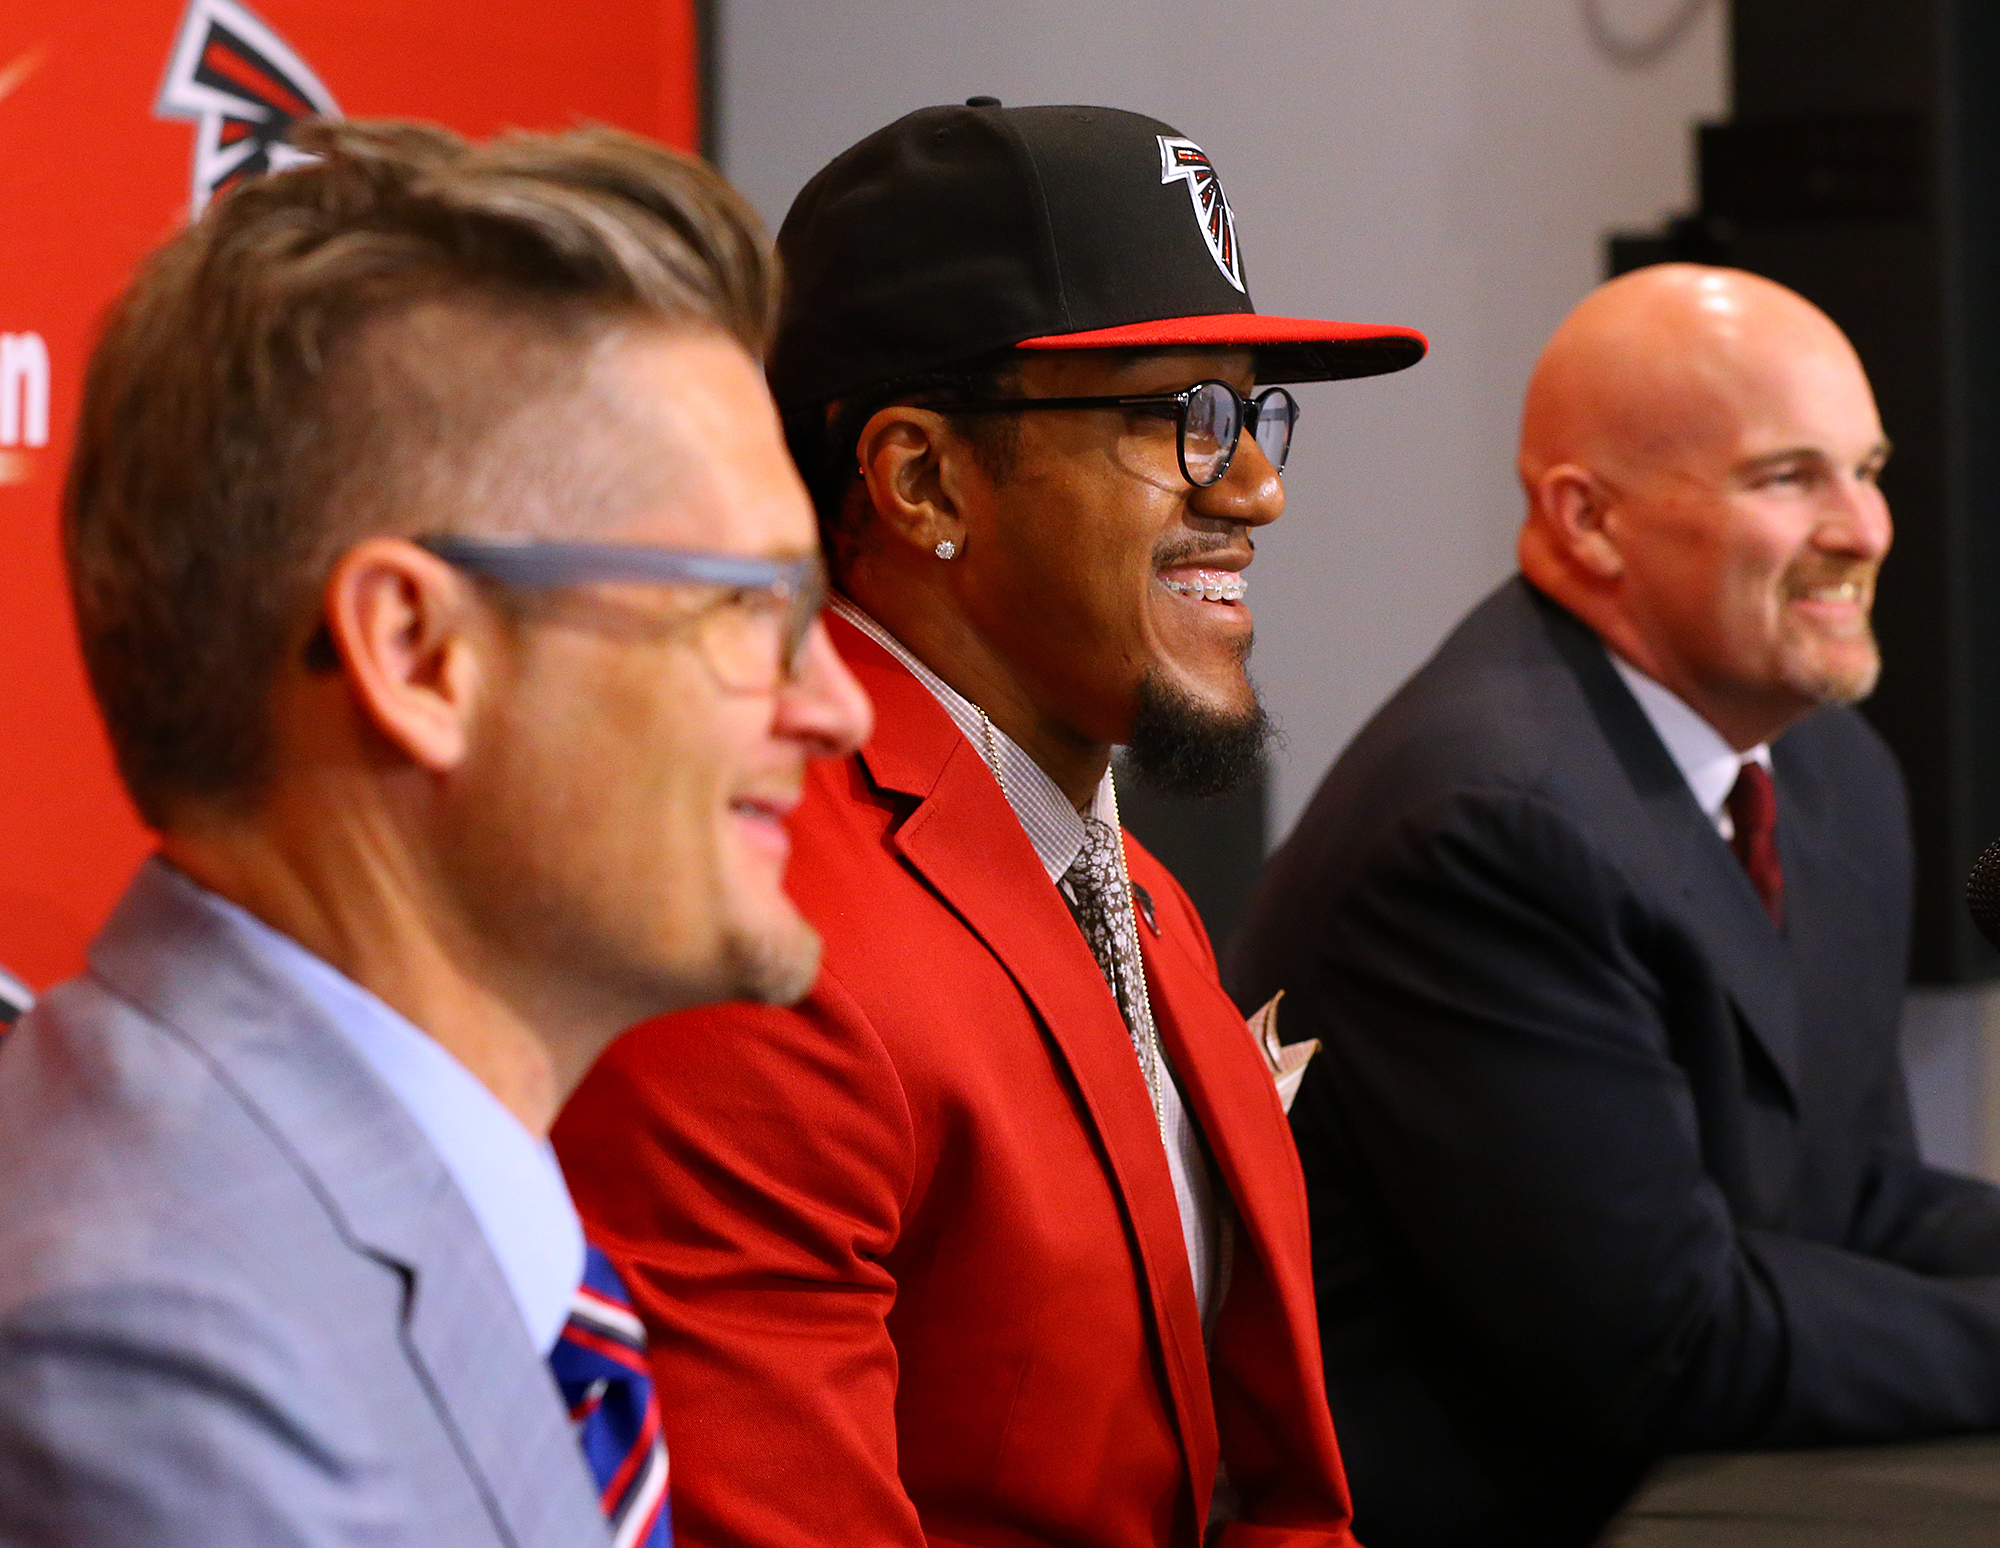 Atlanta Falcons General Manager Thomas Dimitroff, left, attends a news conference with first-round draft pick Vic Beasley, center, and head coach Dan Quinn at the Falcons training facility on Friday, May 1, 2015, in Flowery Branch, Ga. (Curtis Compton/Atl